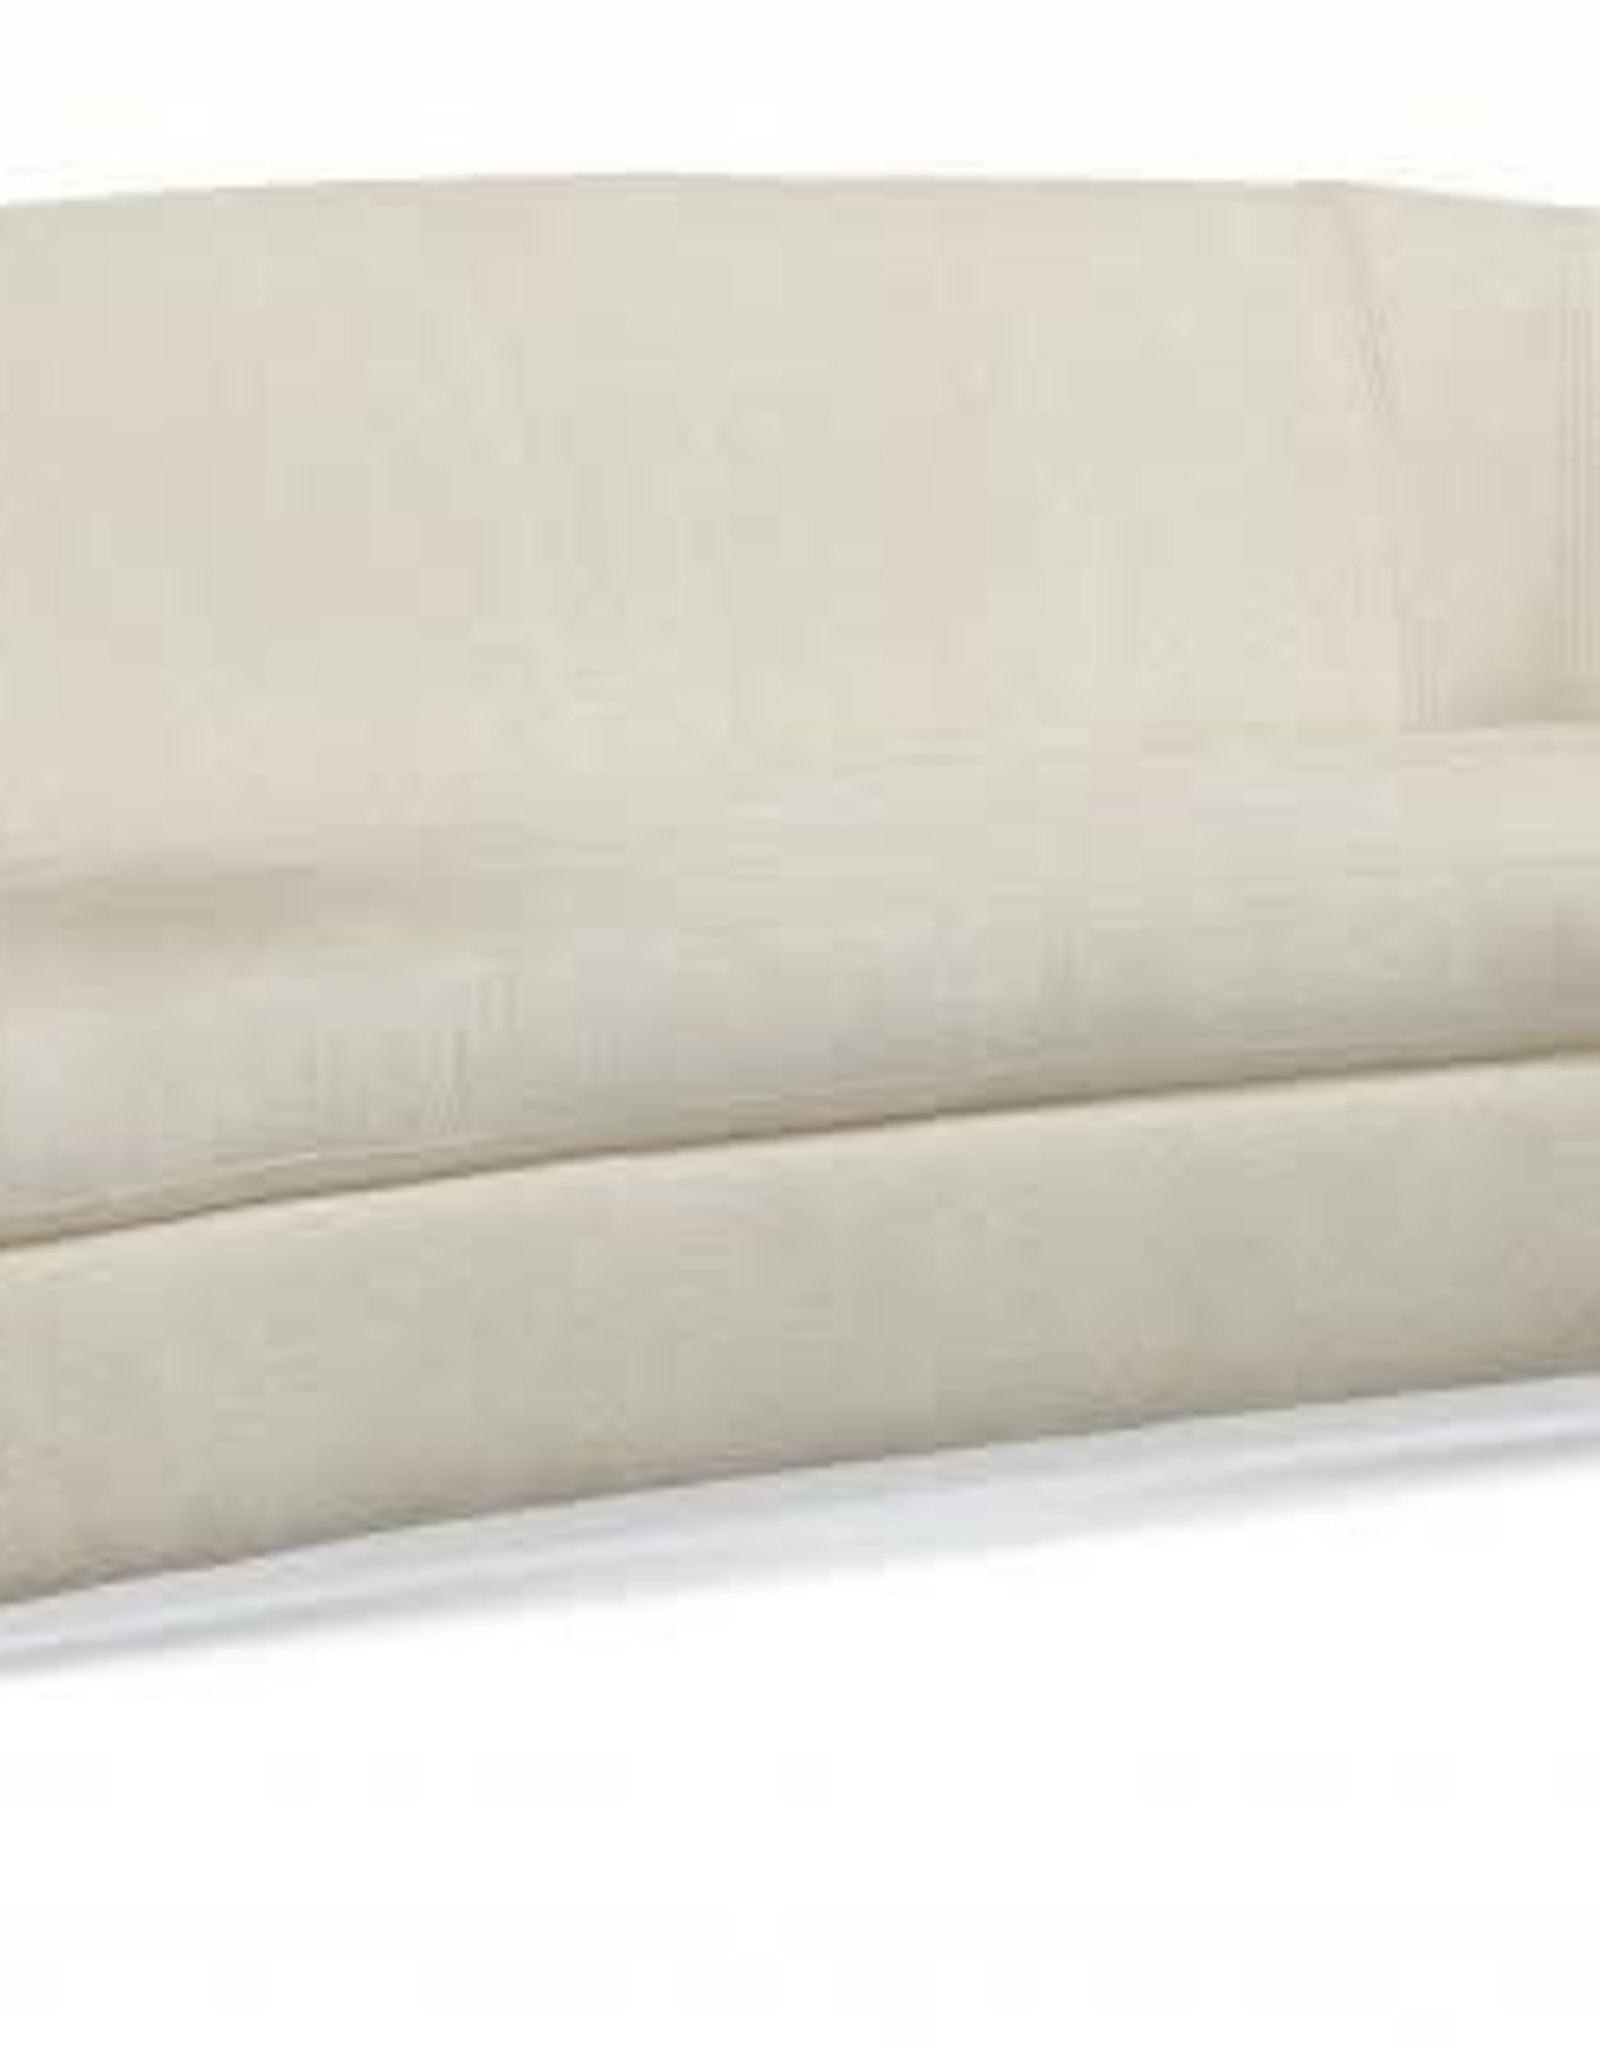 Precedent Fawn Sofa in Rhapsody Cotton #13